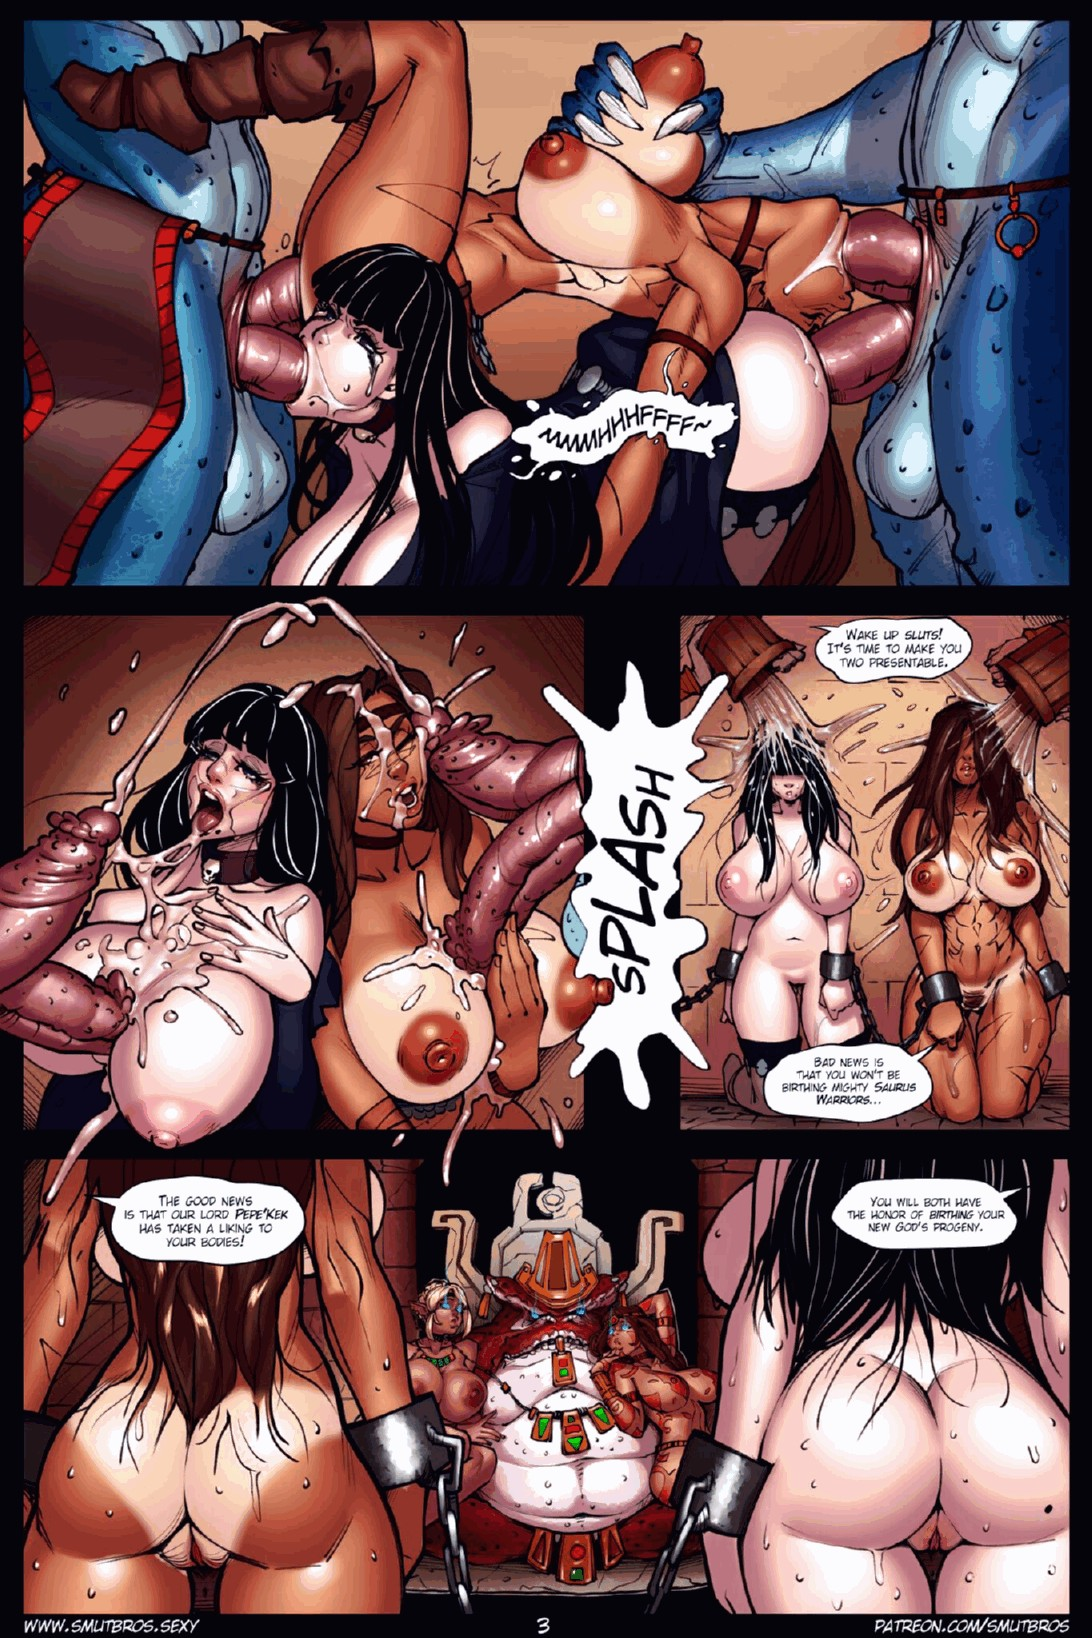 Raiders of the Lost Shadilay porn comic page 003